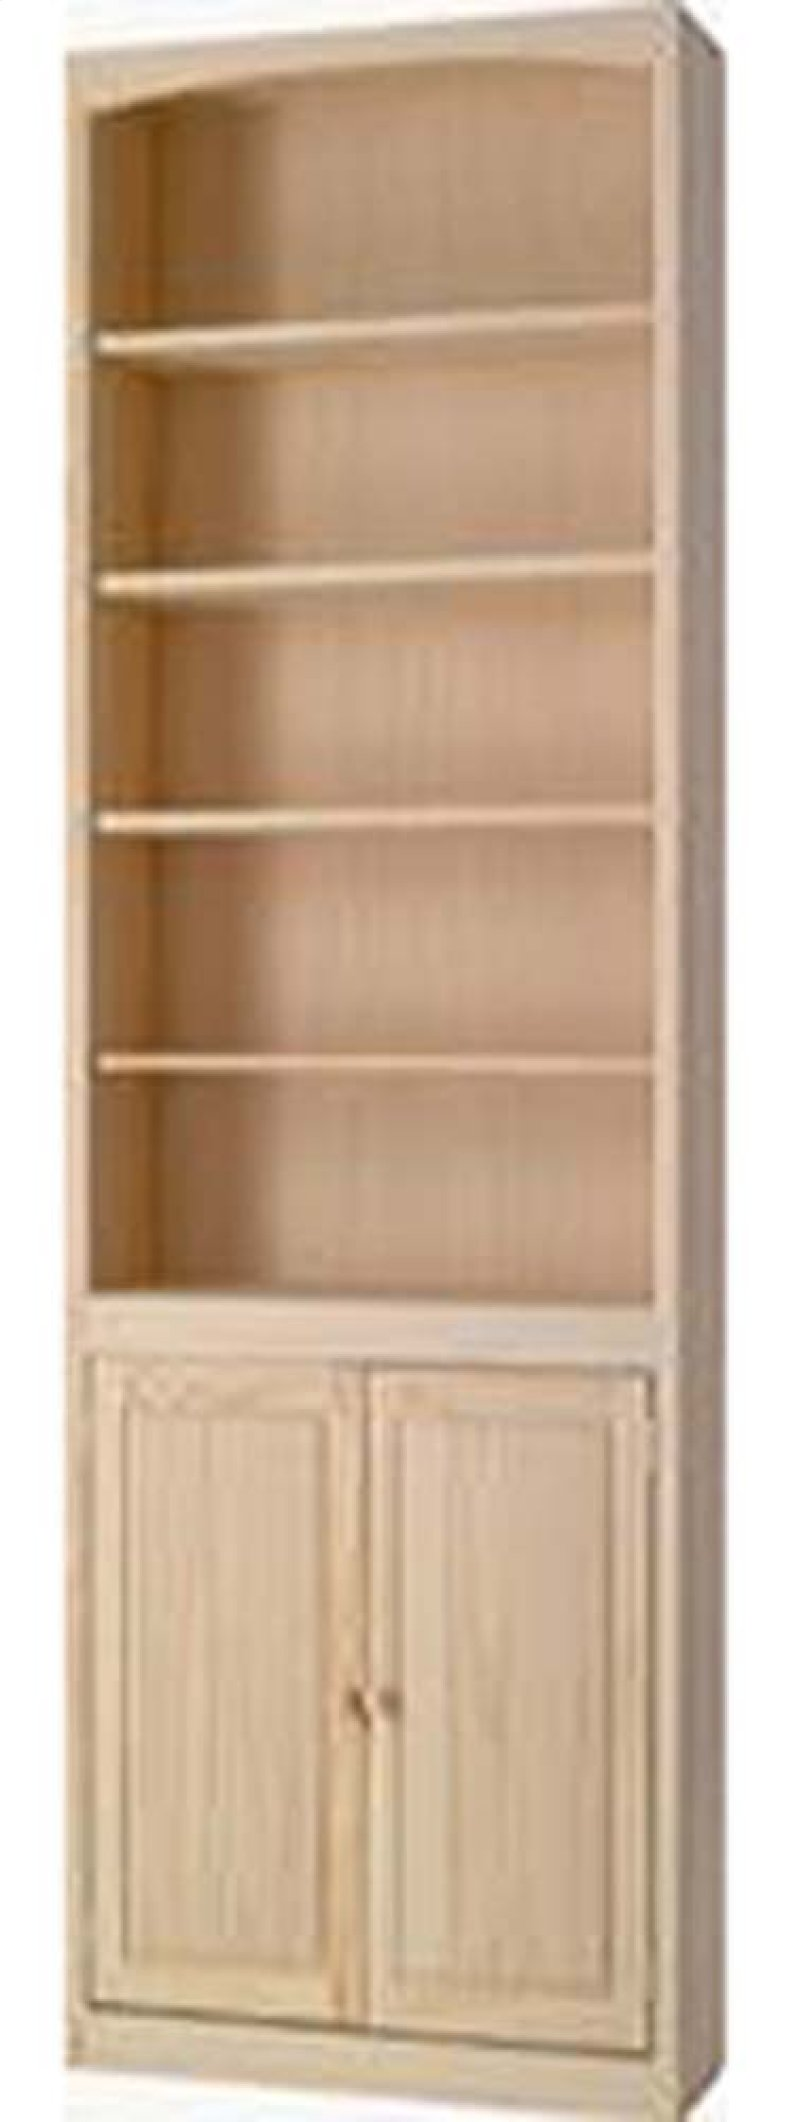 with bookshelves arhaus full decorating free glass bookshelf in living spencer standing shelves potterybarn design home unit inch diy ideas cabinet room built bookcase shelving lowes units of bookcases size wide doors below